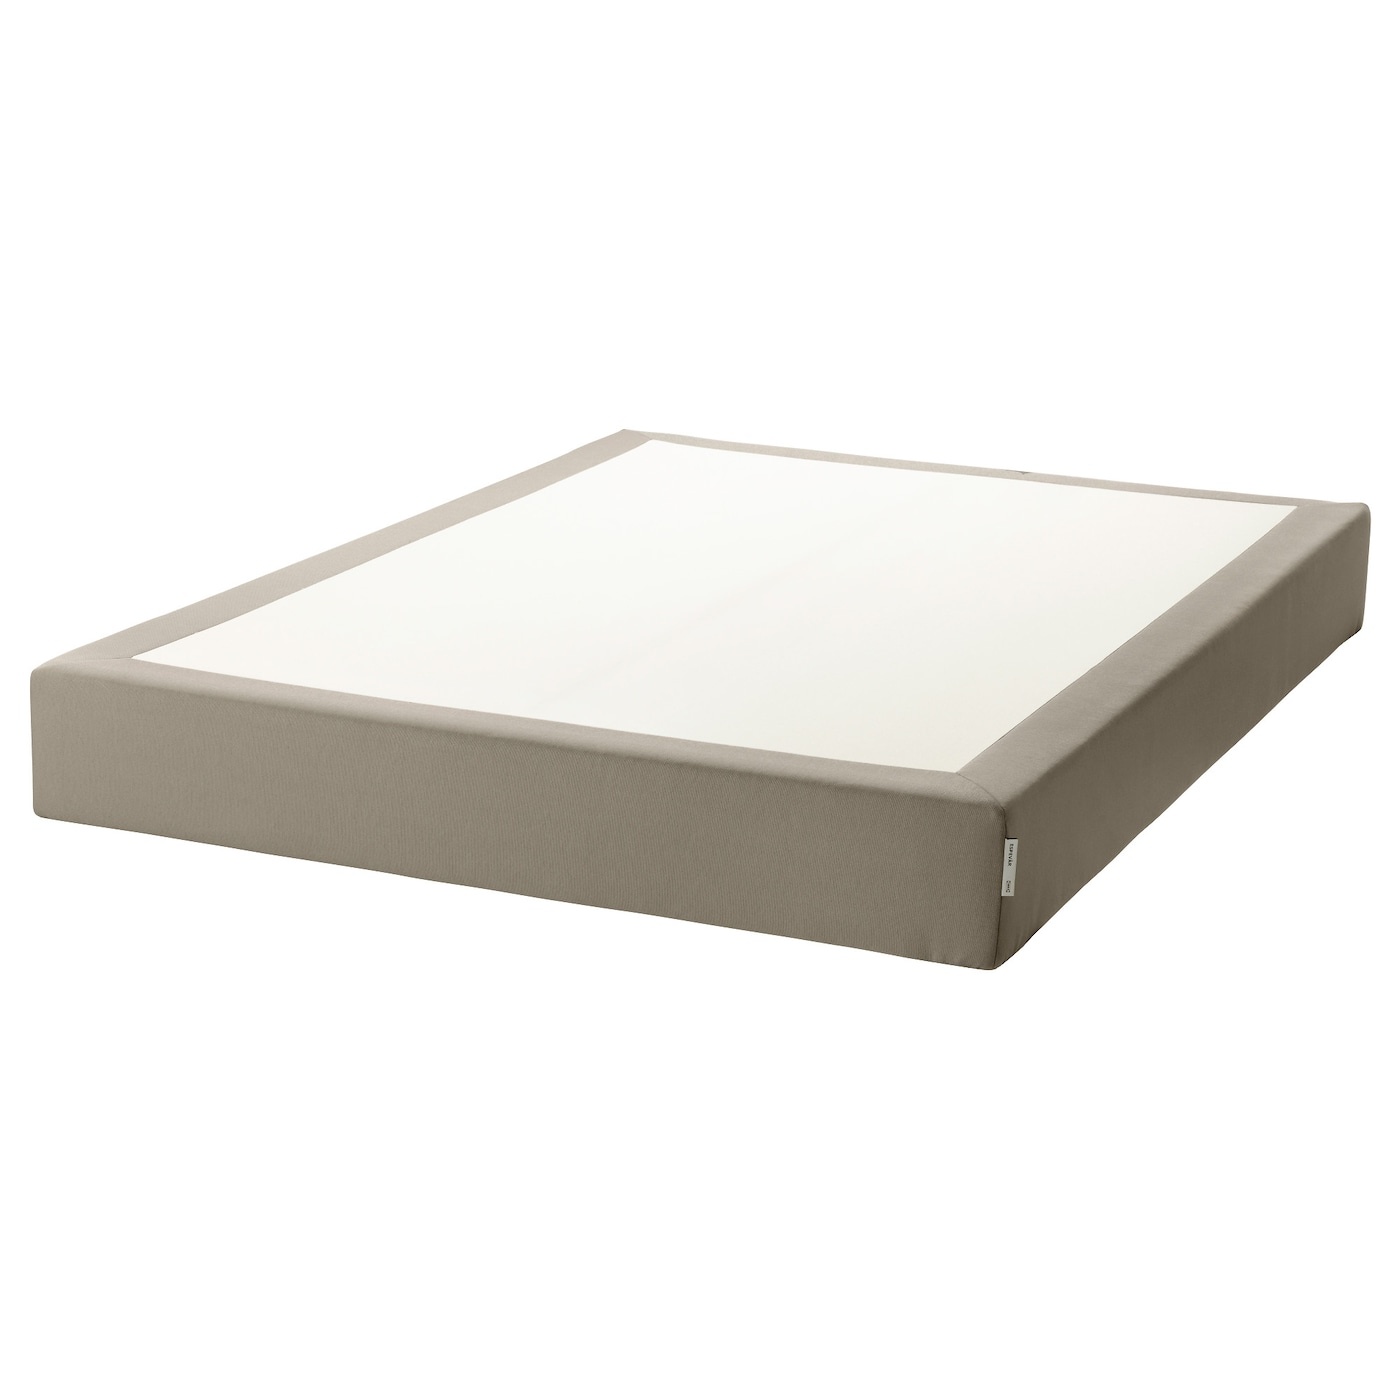 hamarvik matelas ressorts ferme beige fonc 140x200 cm ikea. Black Bedroom Furniture Sets. Home Design Ideas